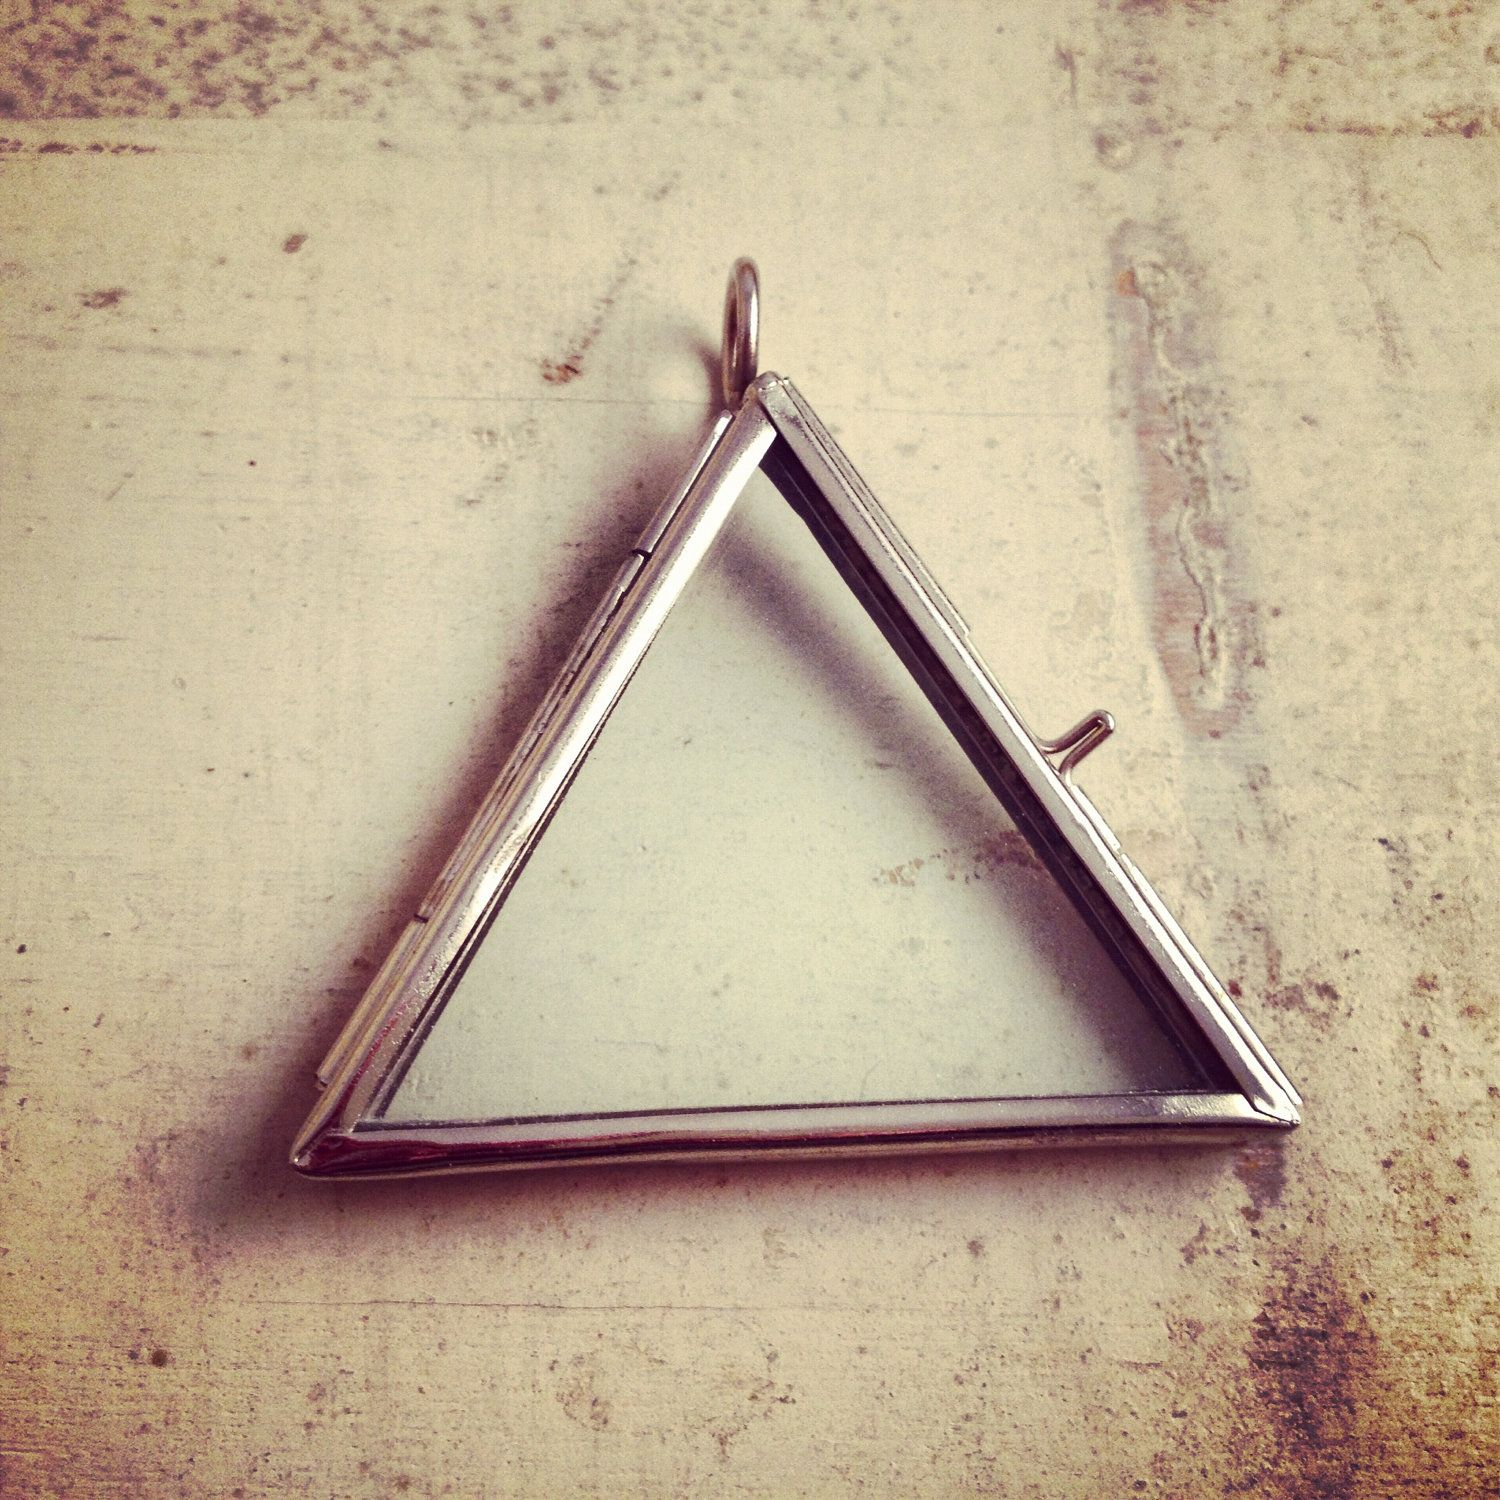 double sided glass triangle frame pendant hinged locket charm frame silver vintage style jewelry supplies